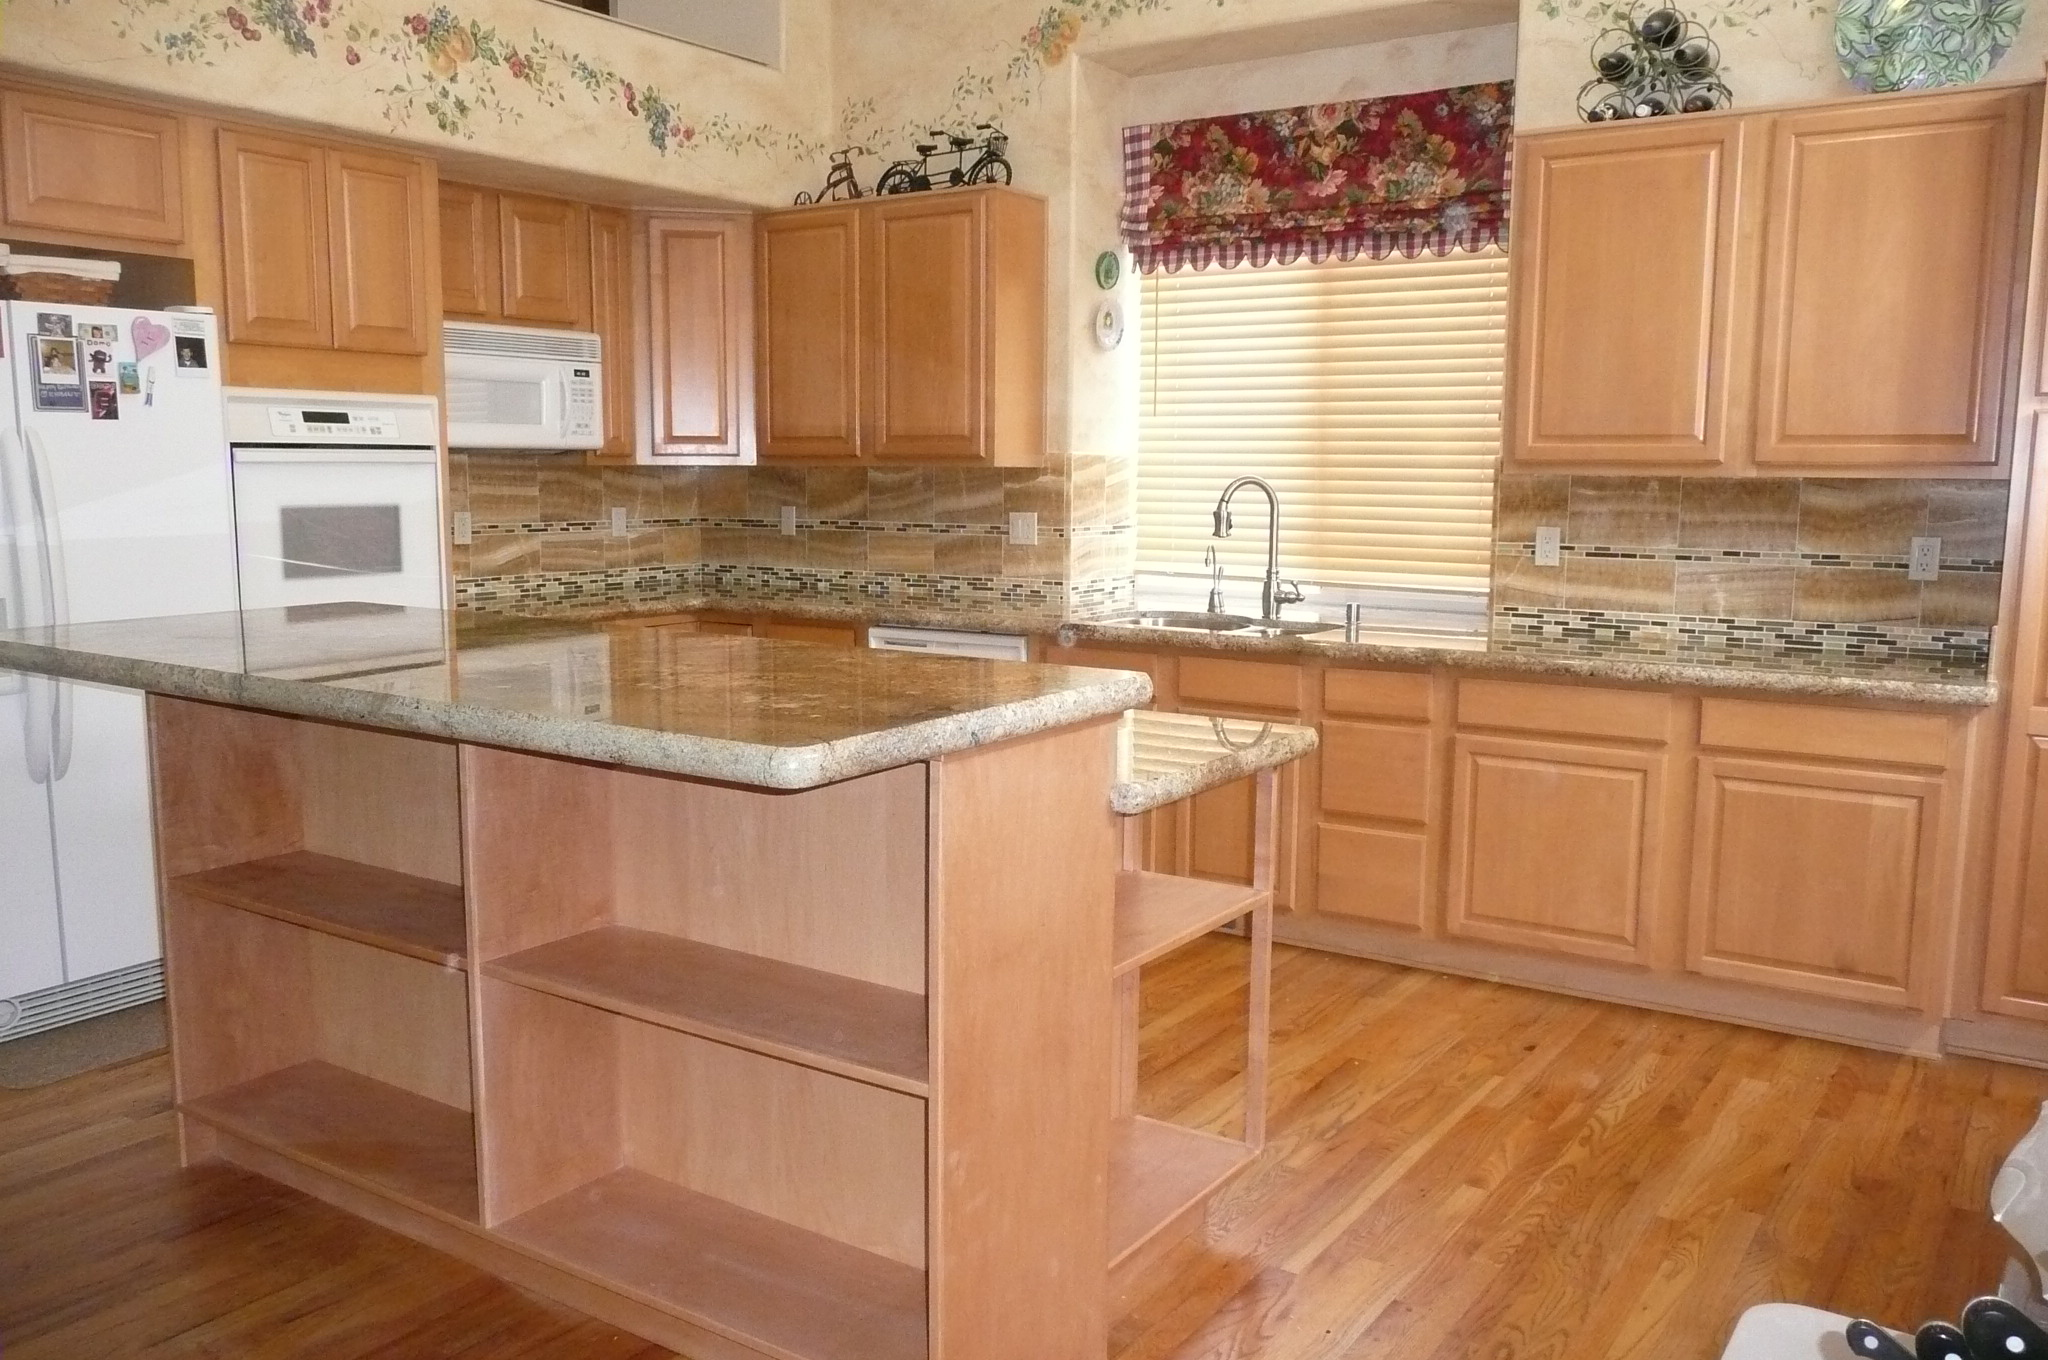 How To Refinish Wood Laminate Kitchen Cabinets Functionalitiesnet